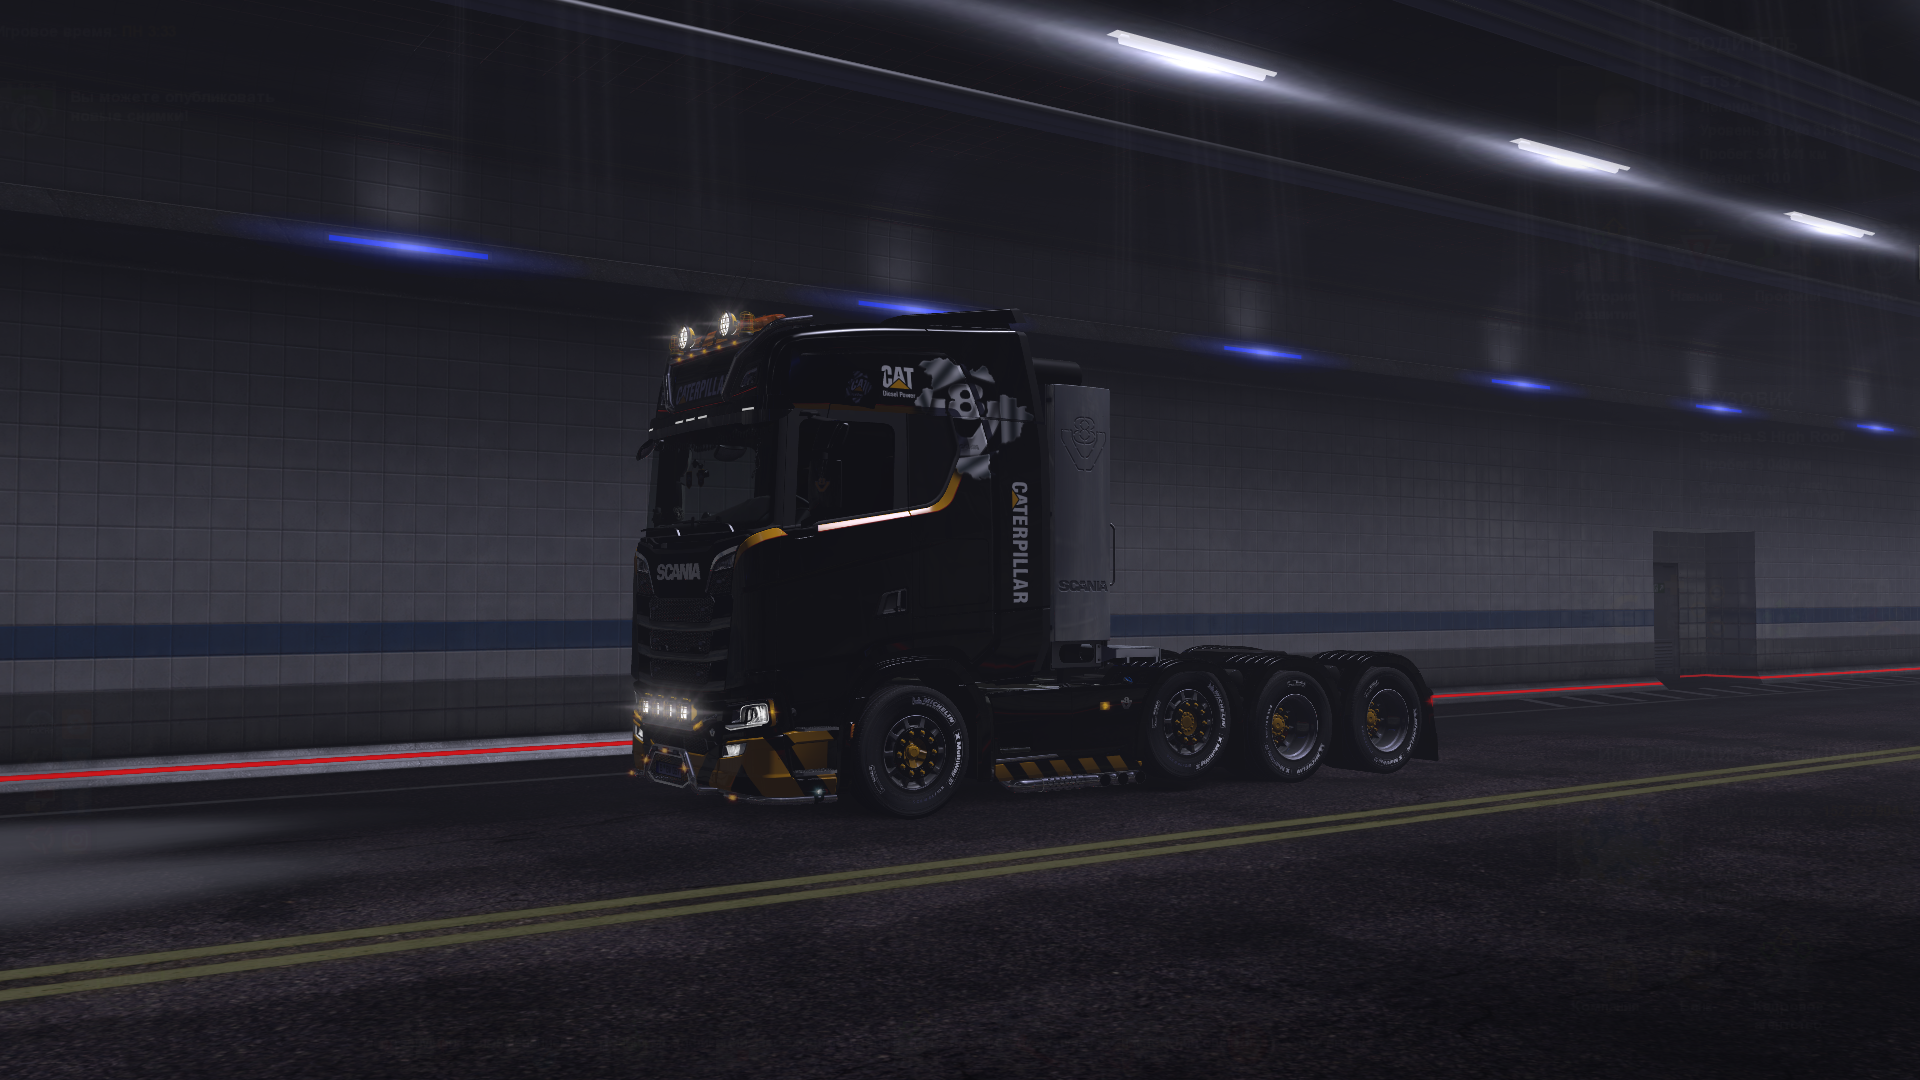 Scania 2016 Caterpillar - Euro Truck Simulator 2